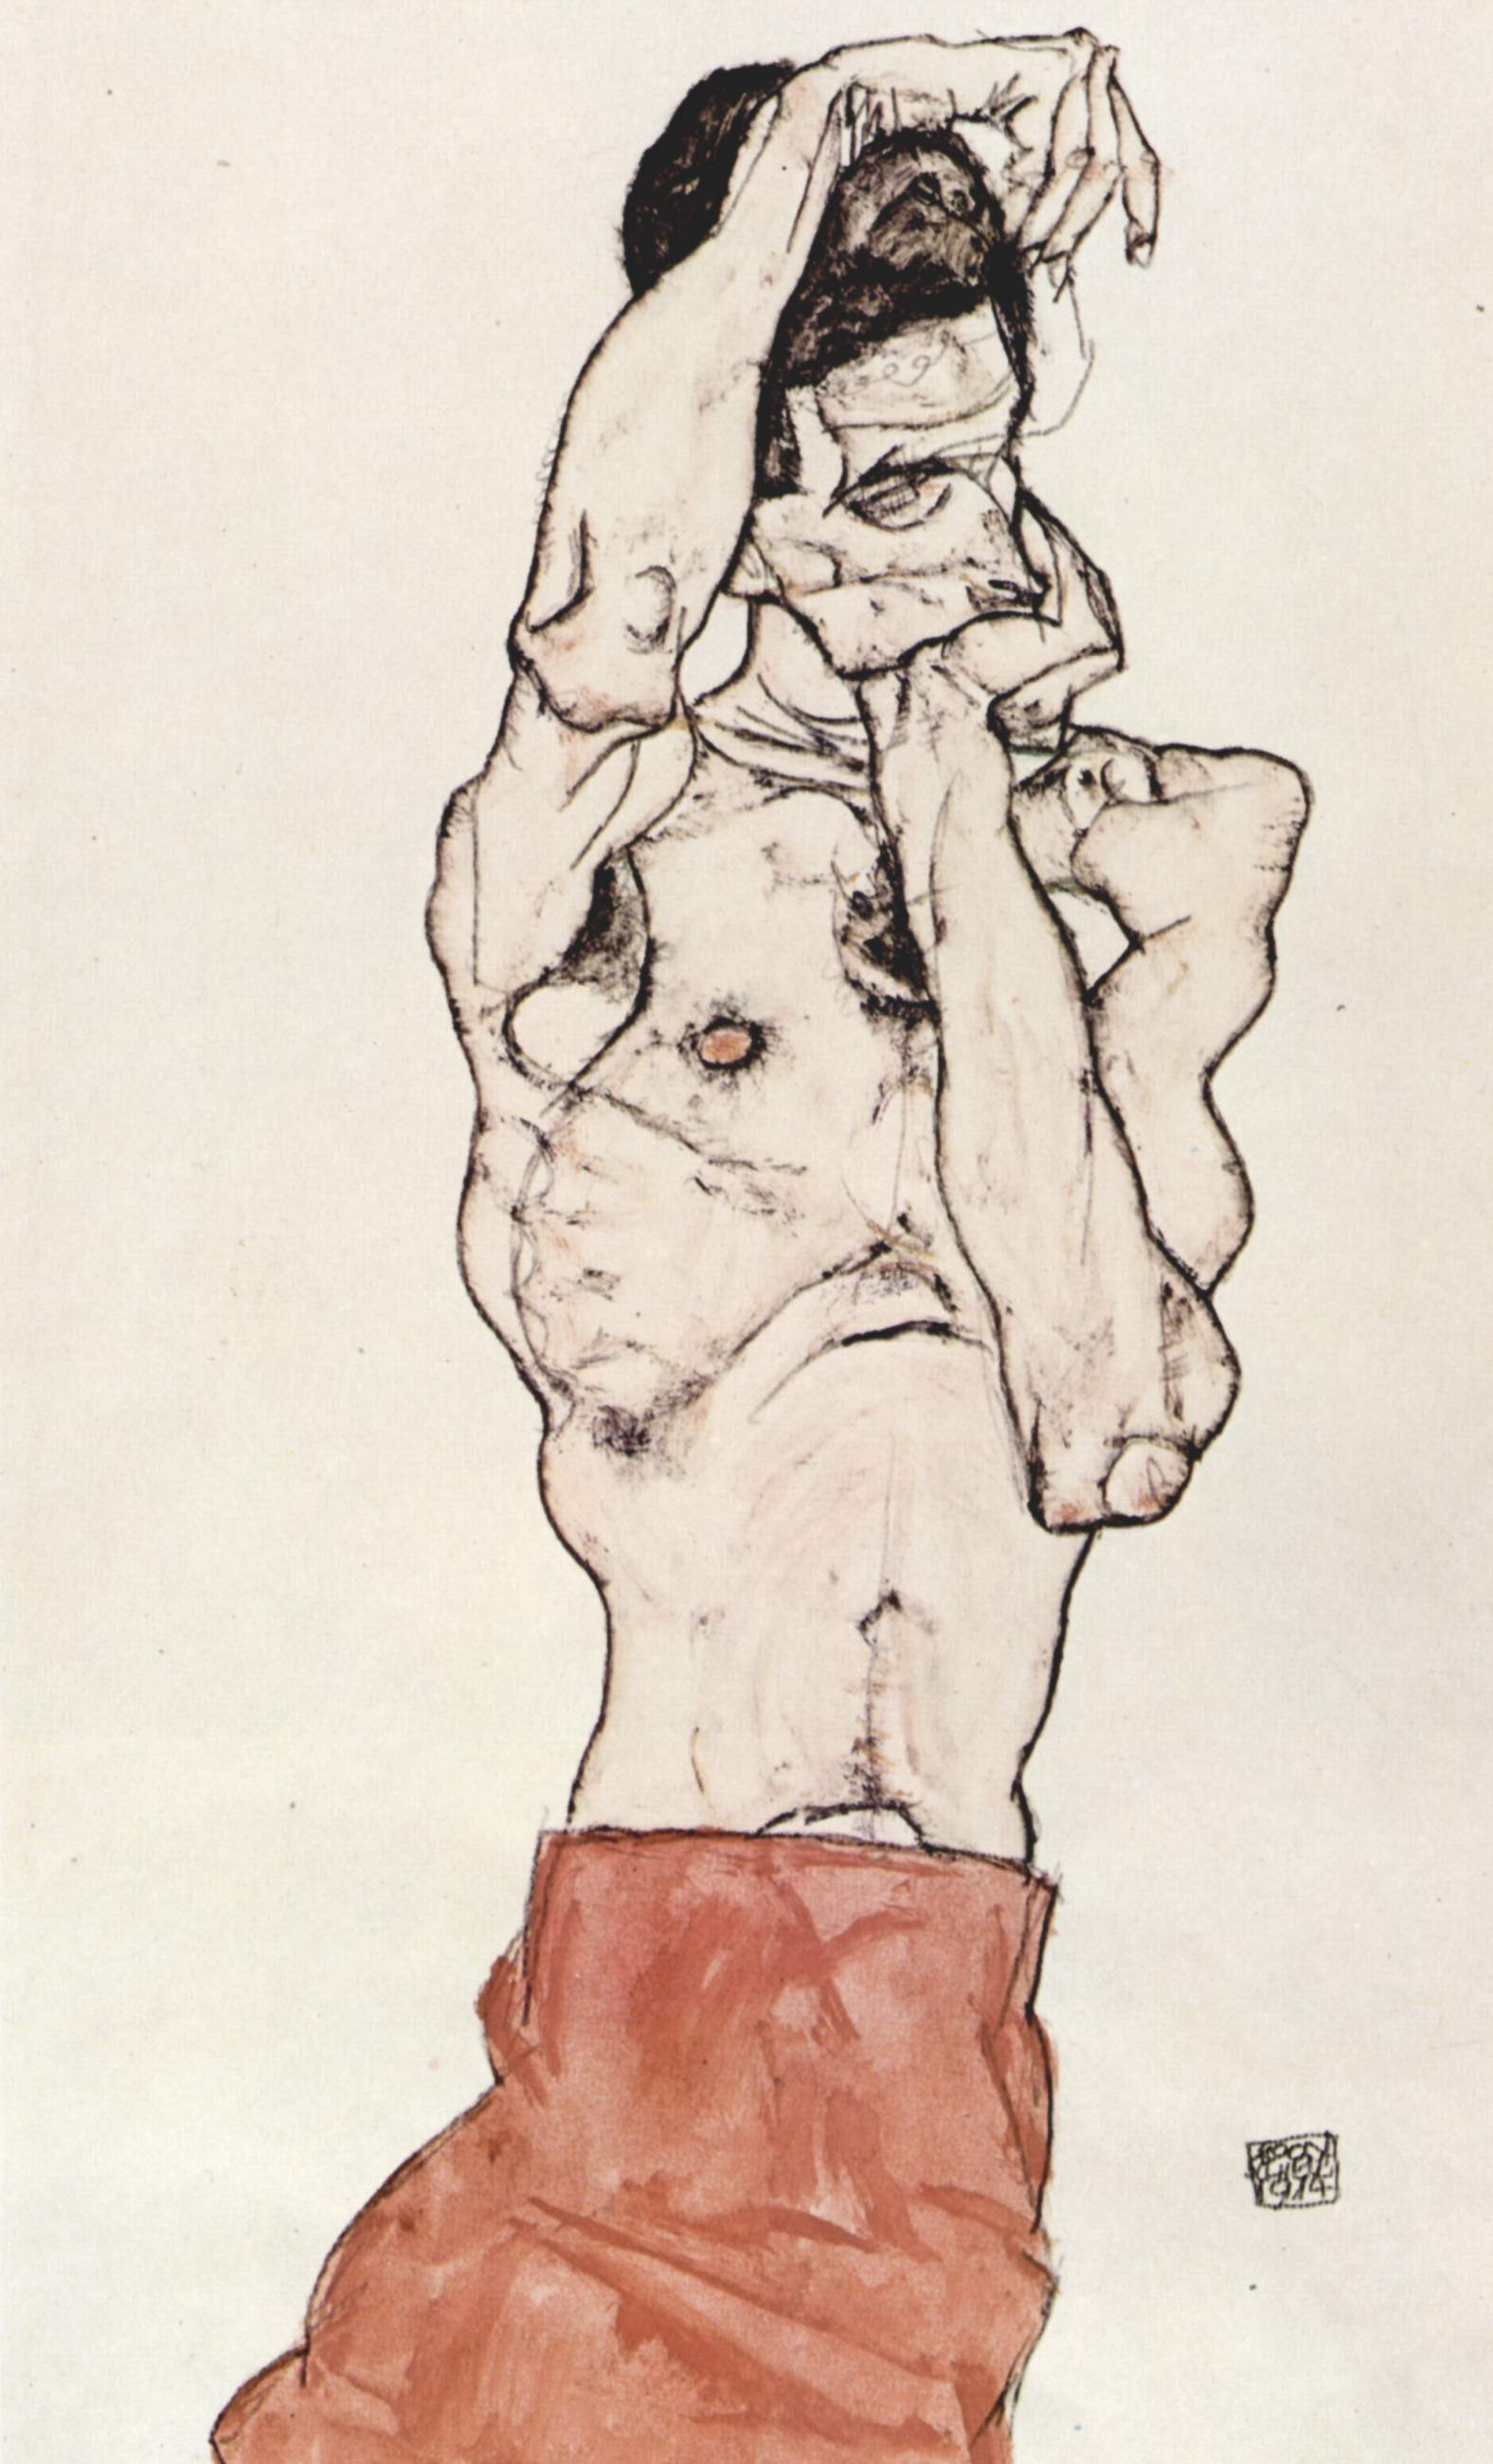 I've spent far too much time studying how Egon Schiele draws hands.